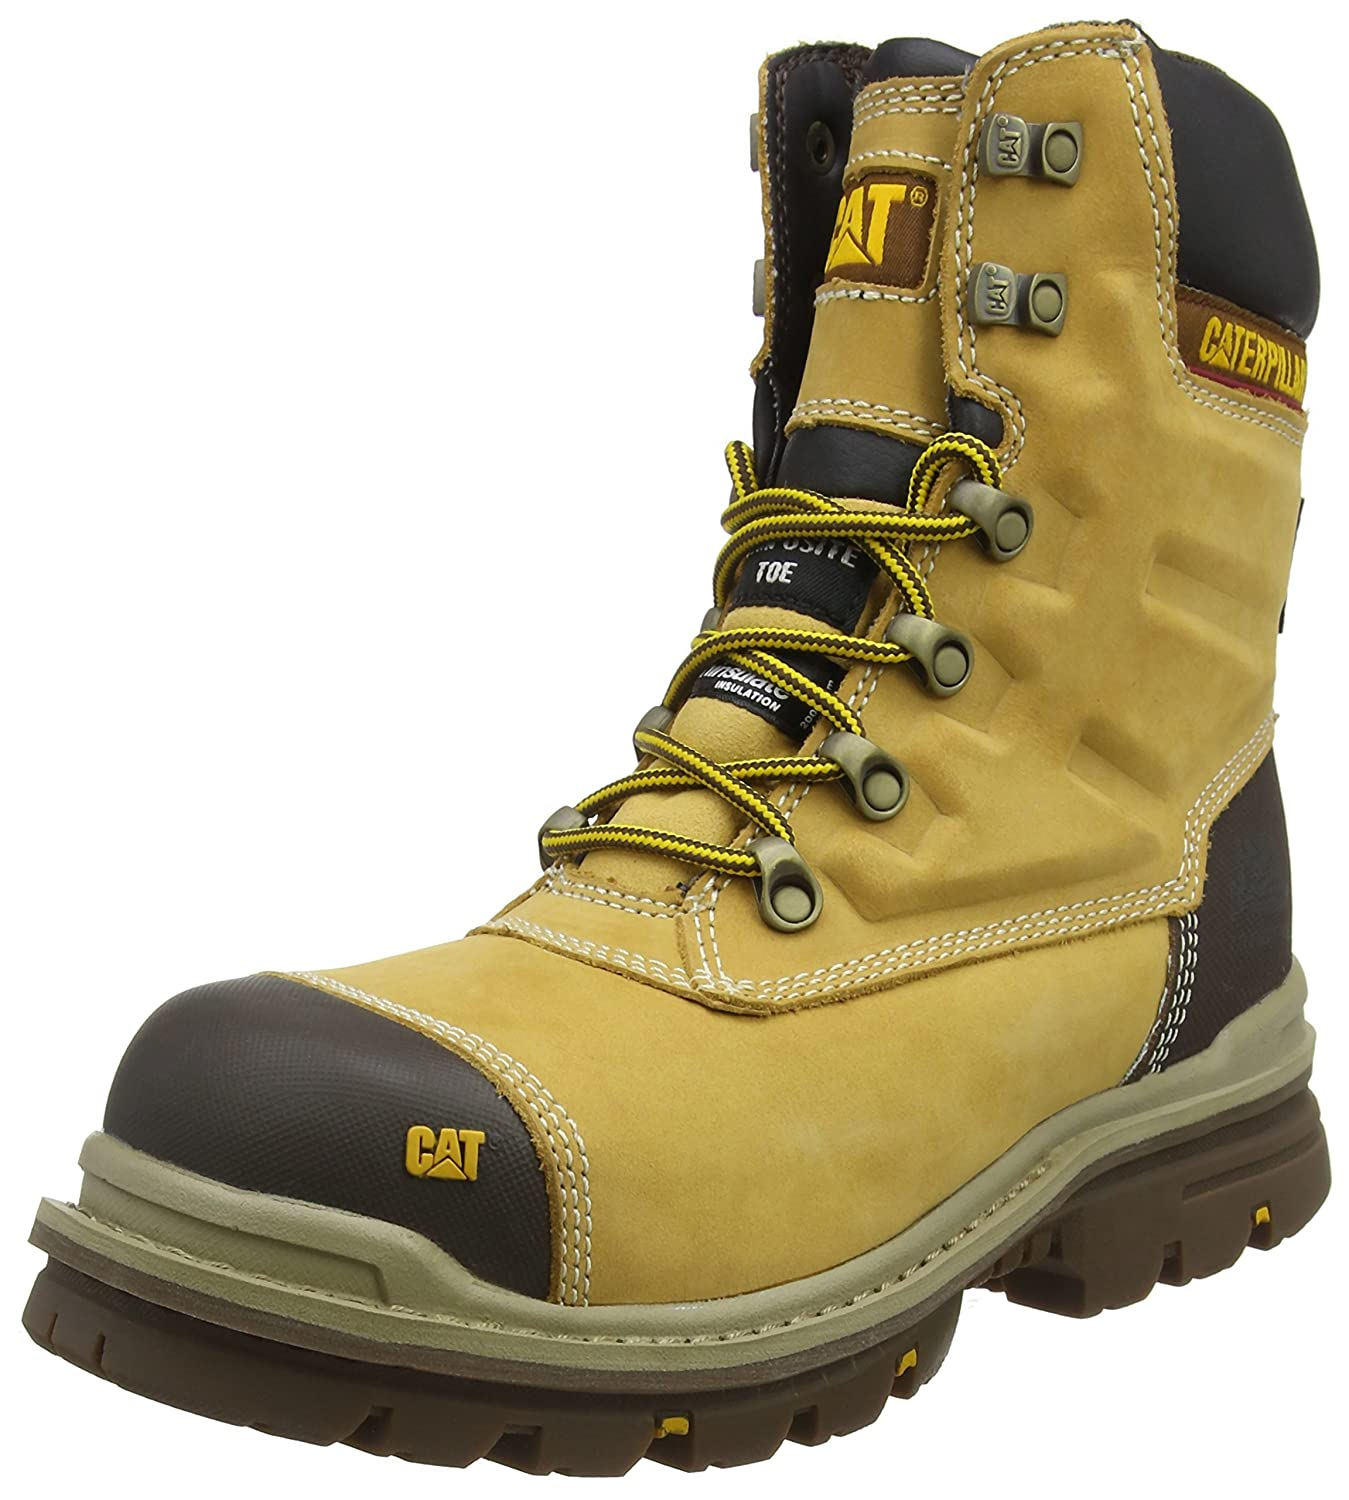 Cat ® GRAVEL S3 P717675 Mens Steel Toe Cap Leather Safety Boots Dark Beige